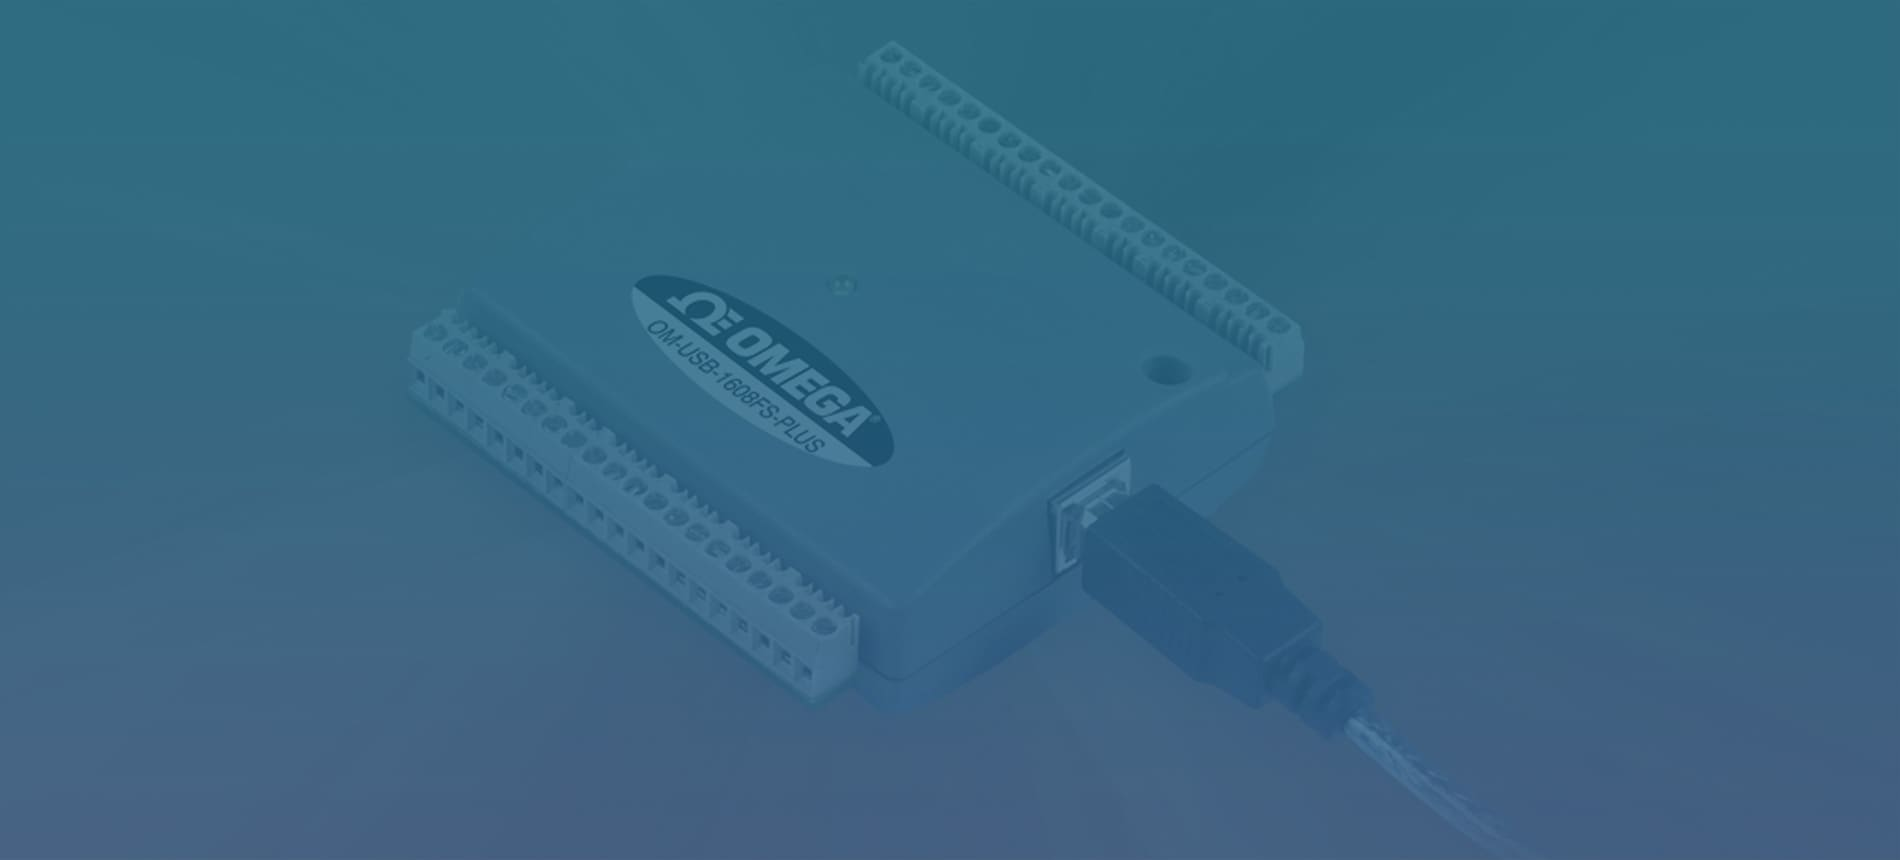 Measurement of Current with a Voltage DAQ | Omega Engineering US